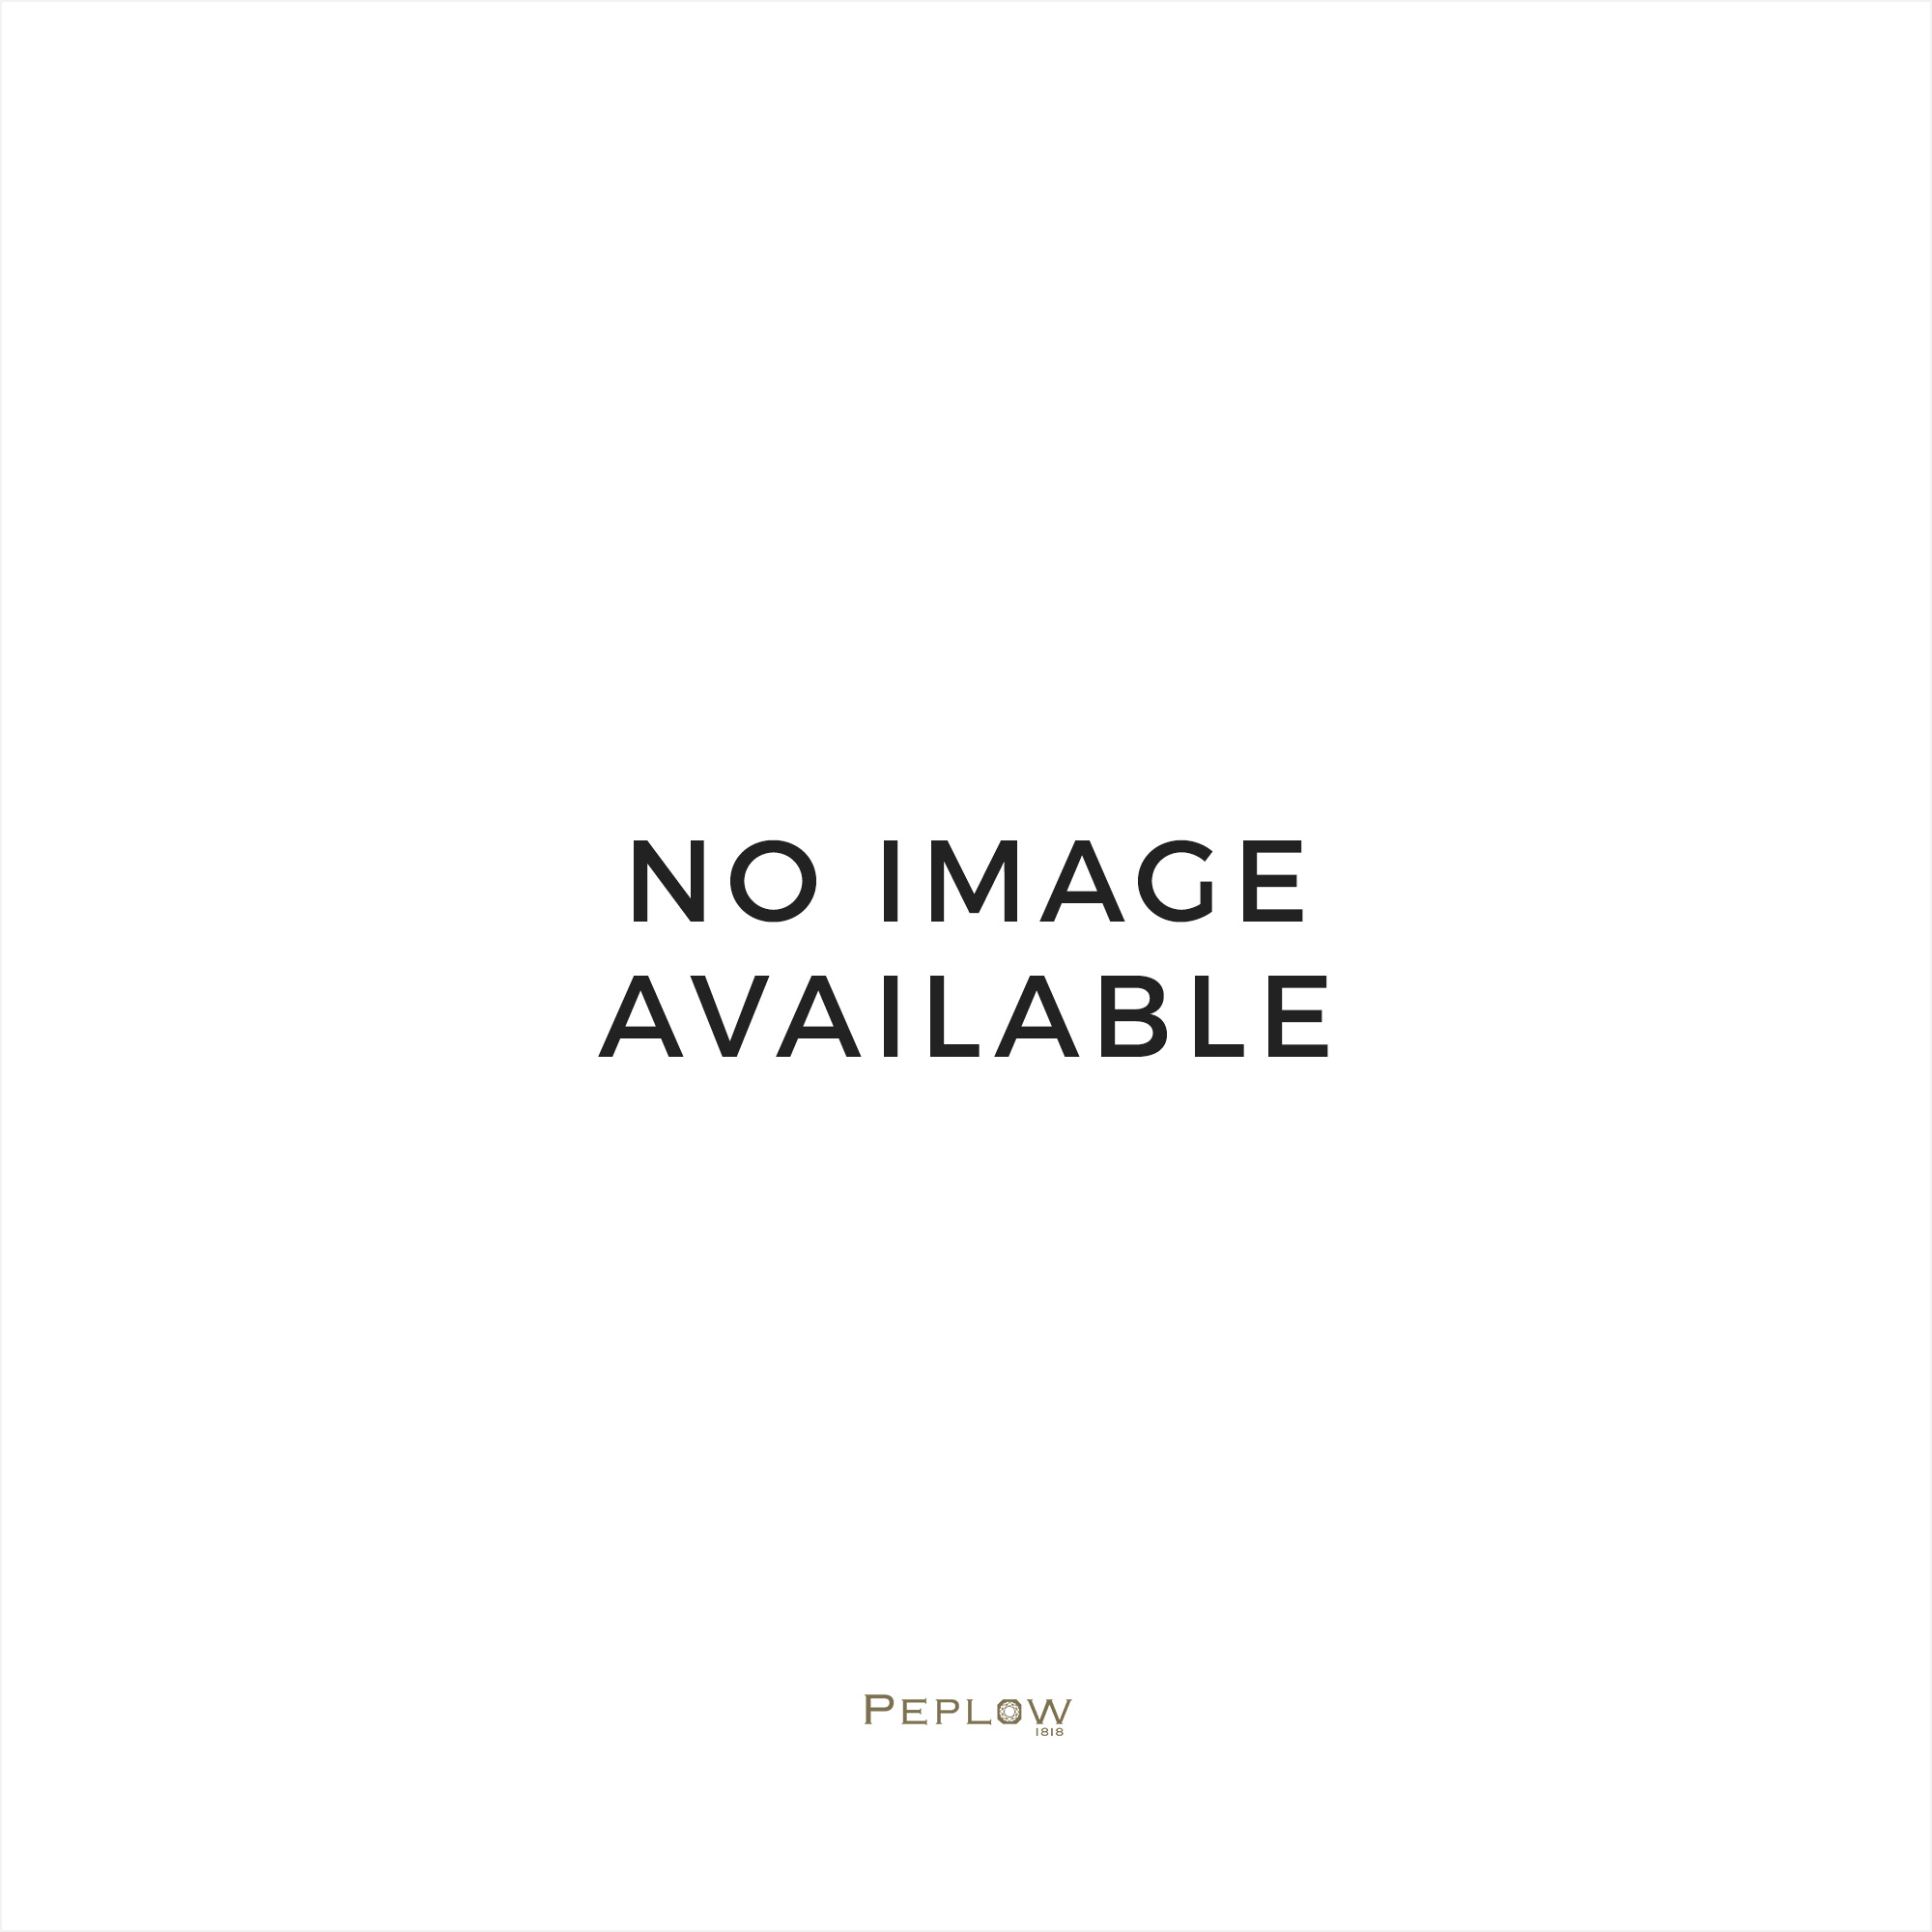 Citizen Watches Citizen Mens Chrono Tine A-T Eco Drive Watch